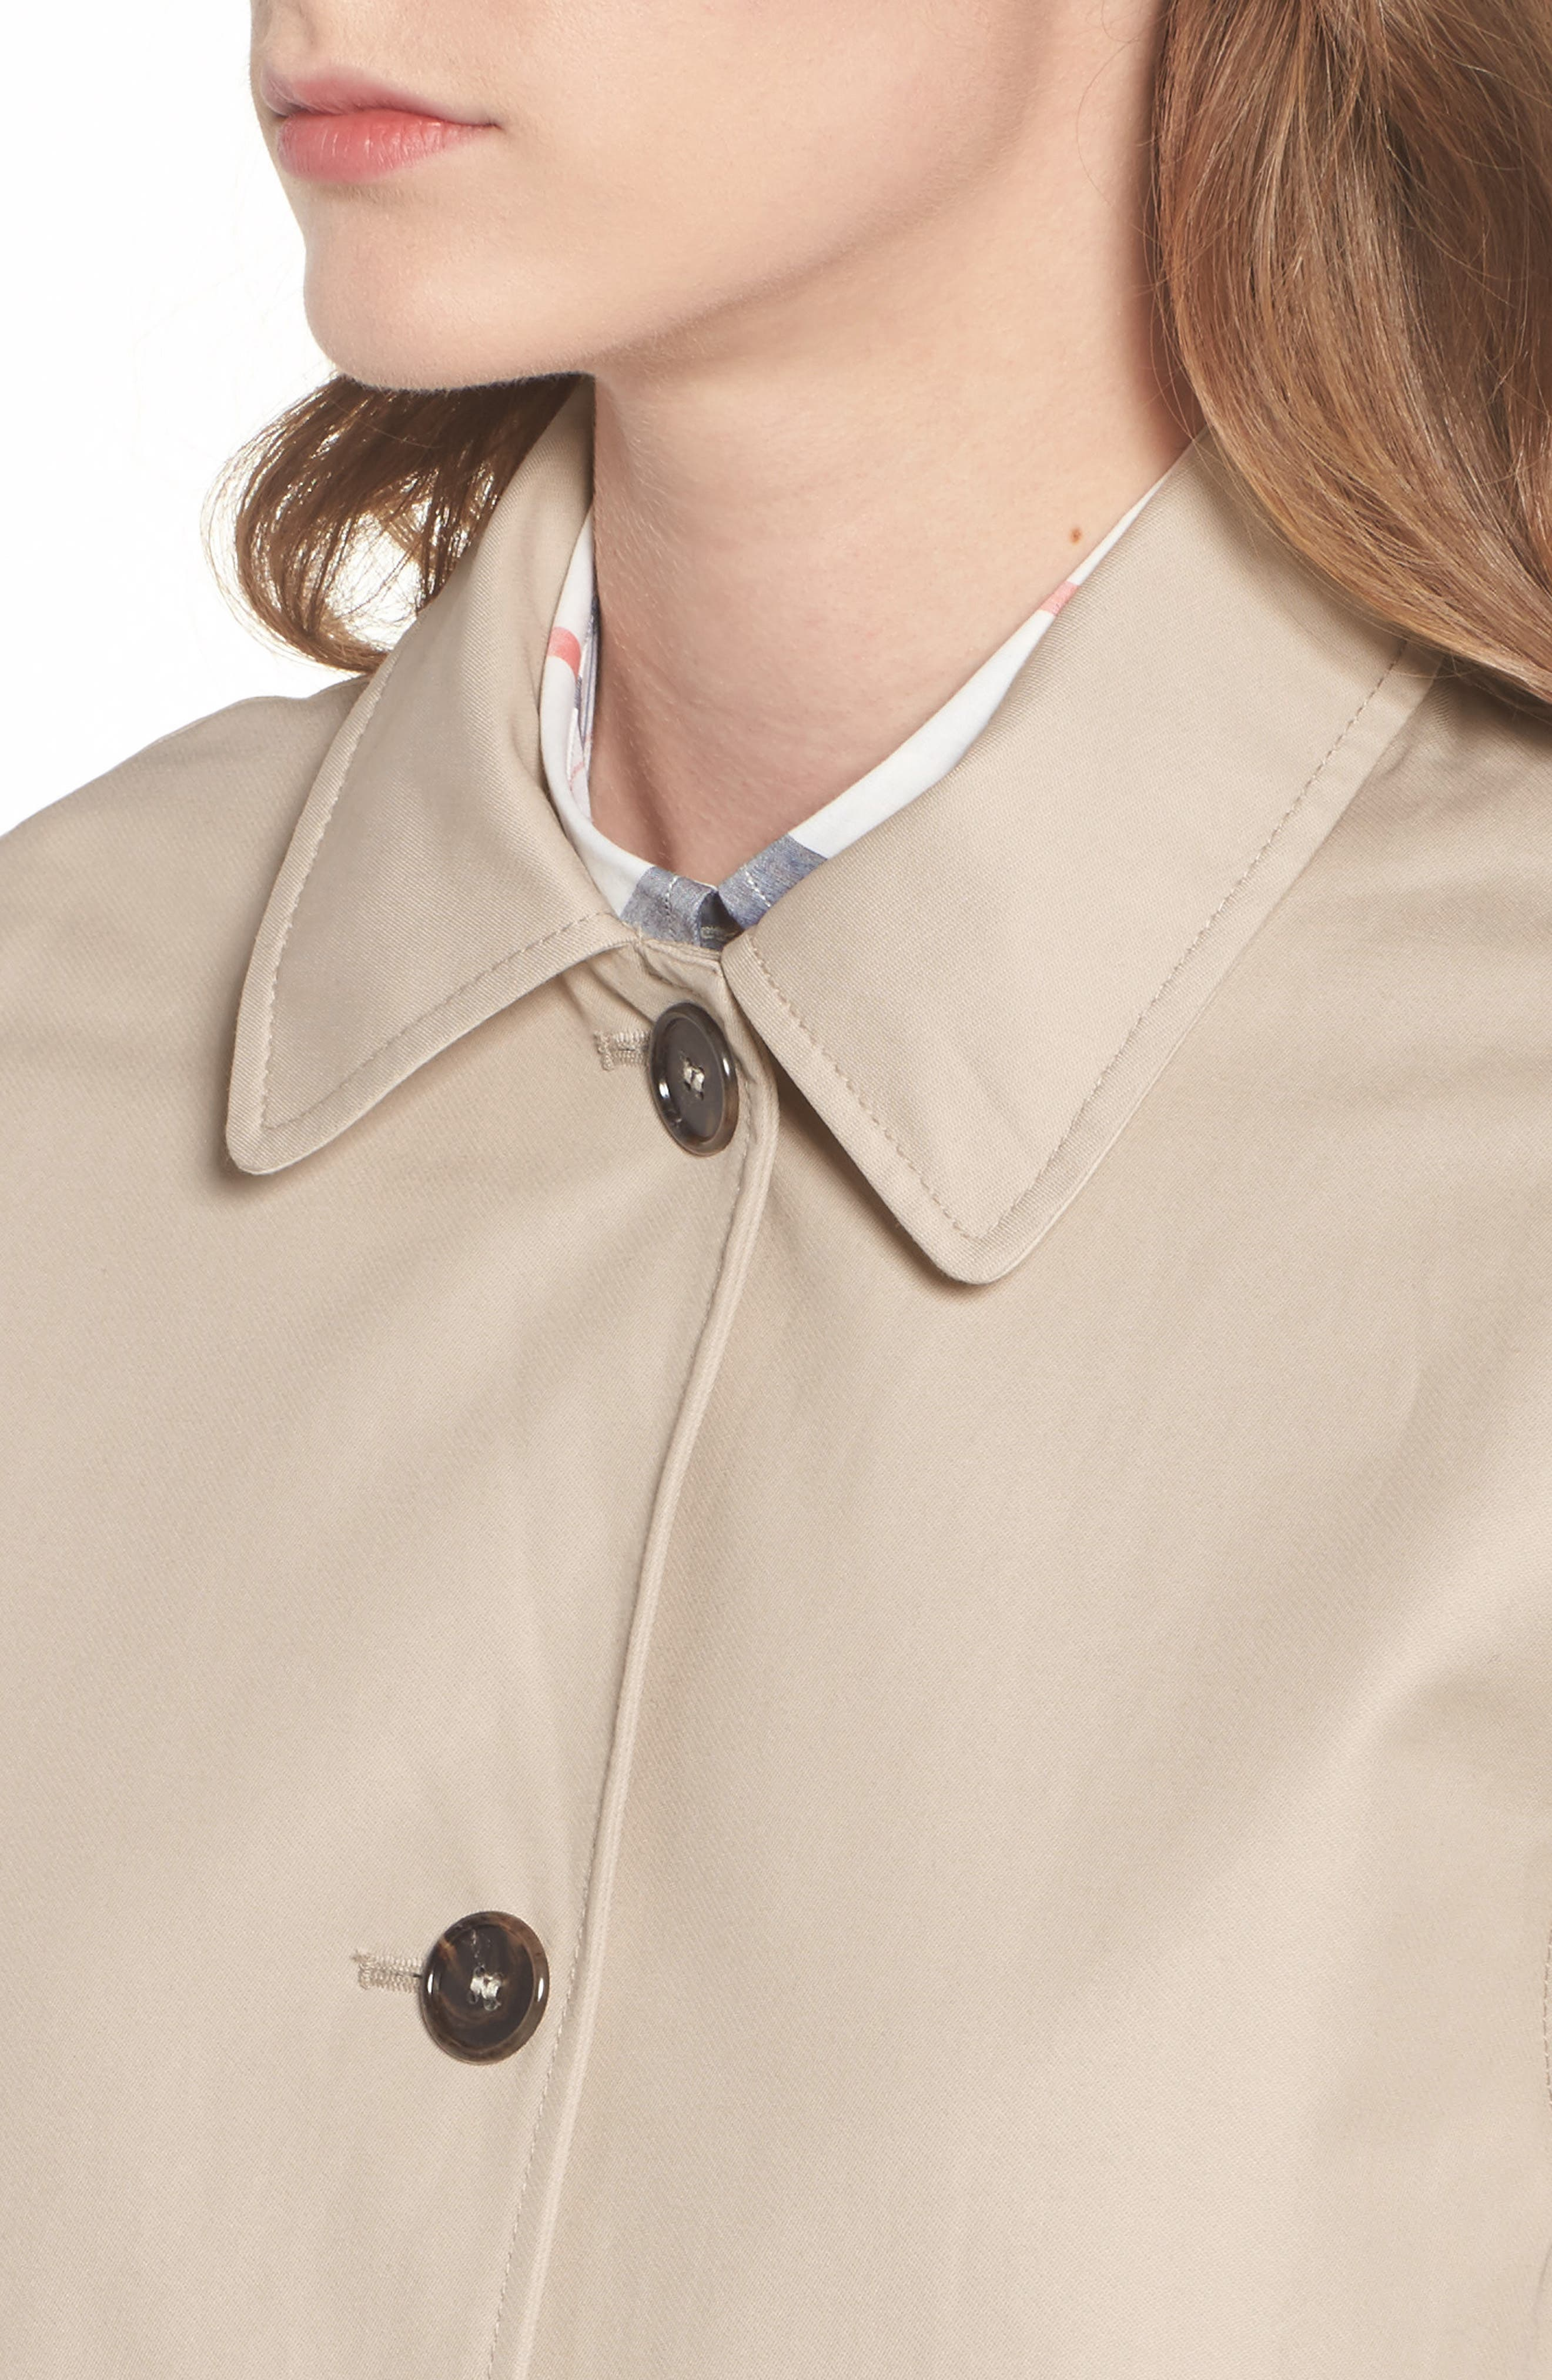 Yewdale Jacket,                             Alternate thumbnail 4, color,